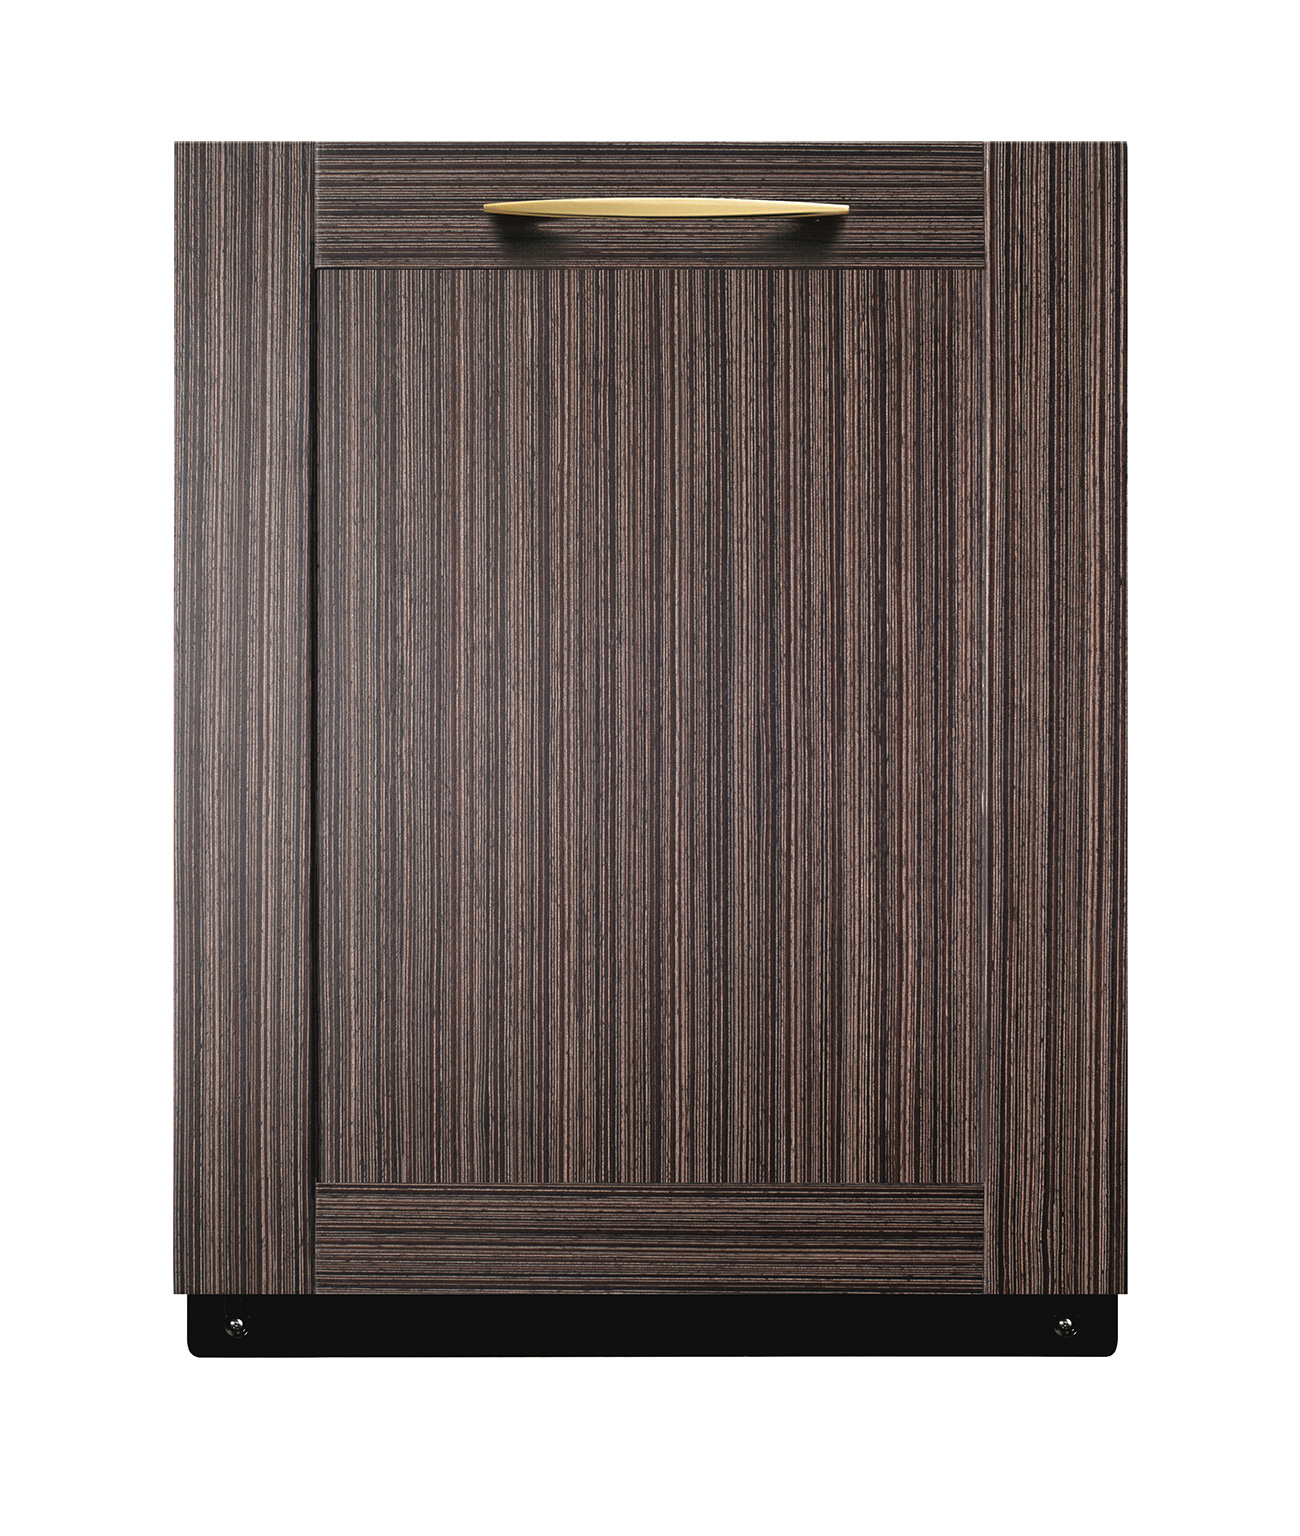 Signature Kitchen Suite Panel-Ready Dishwasher